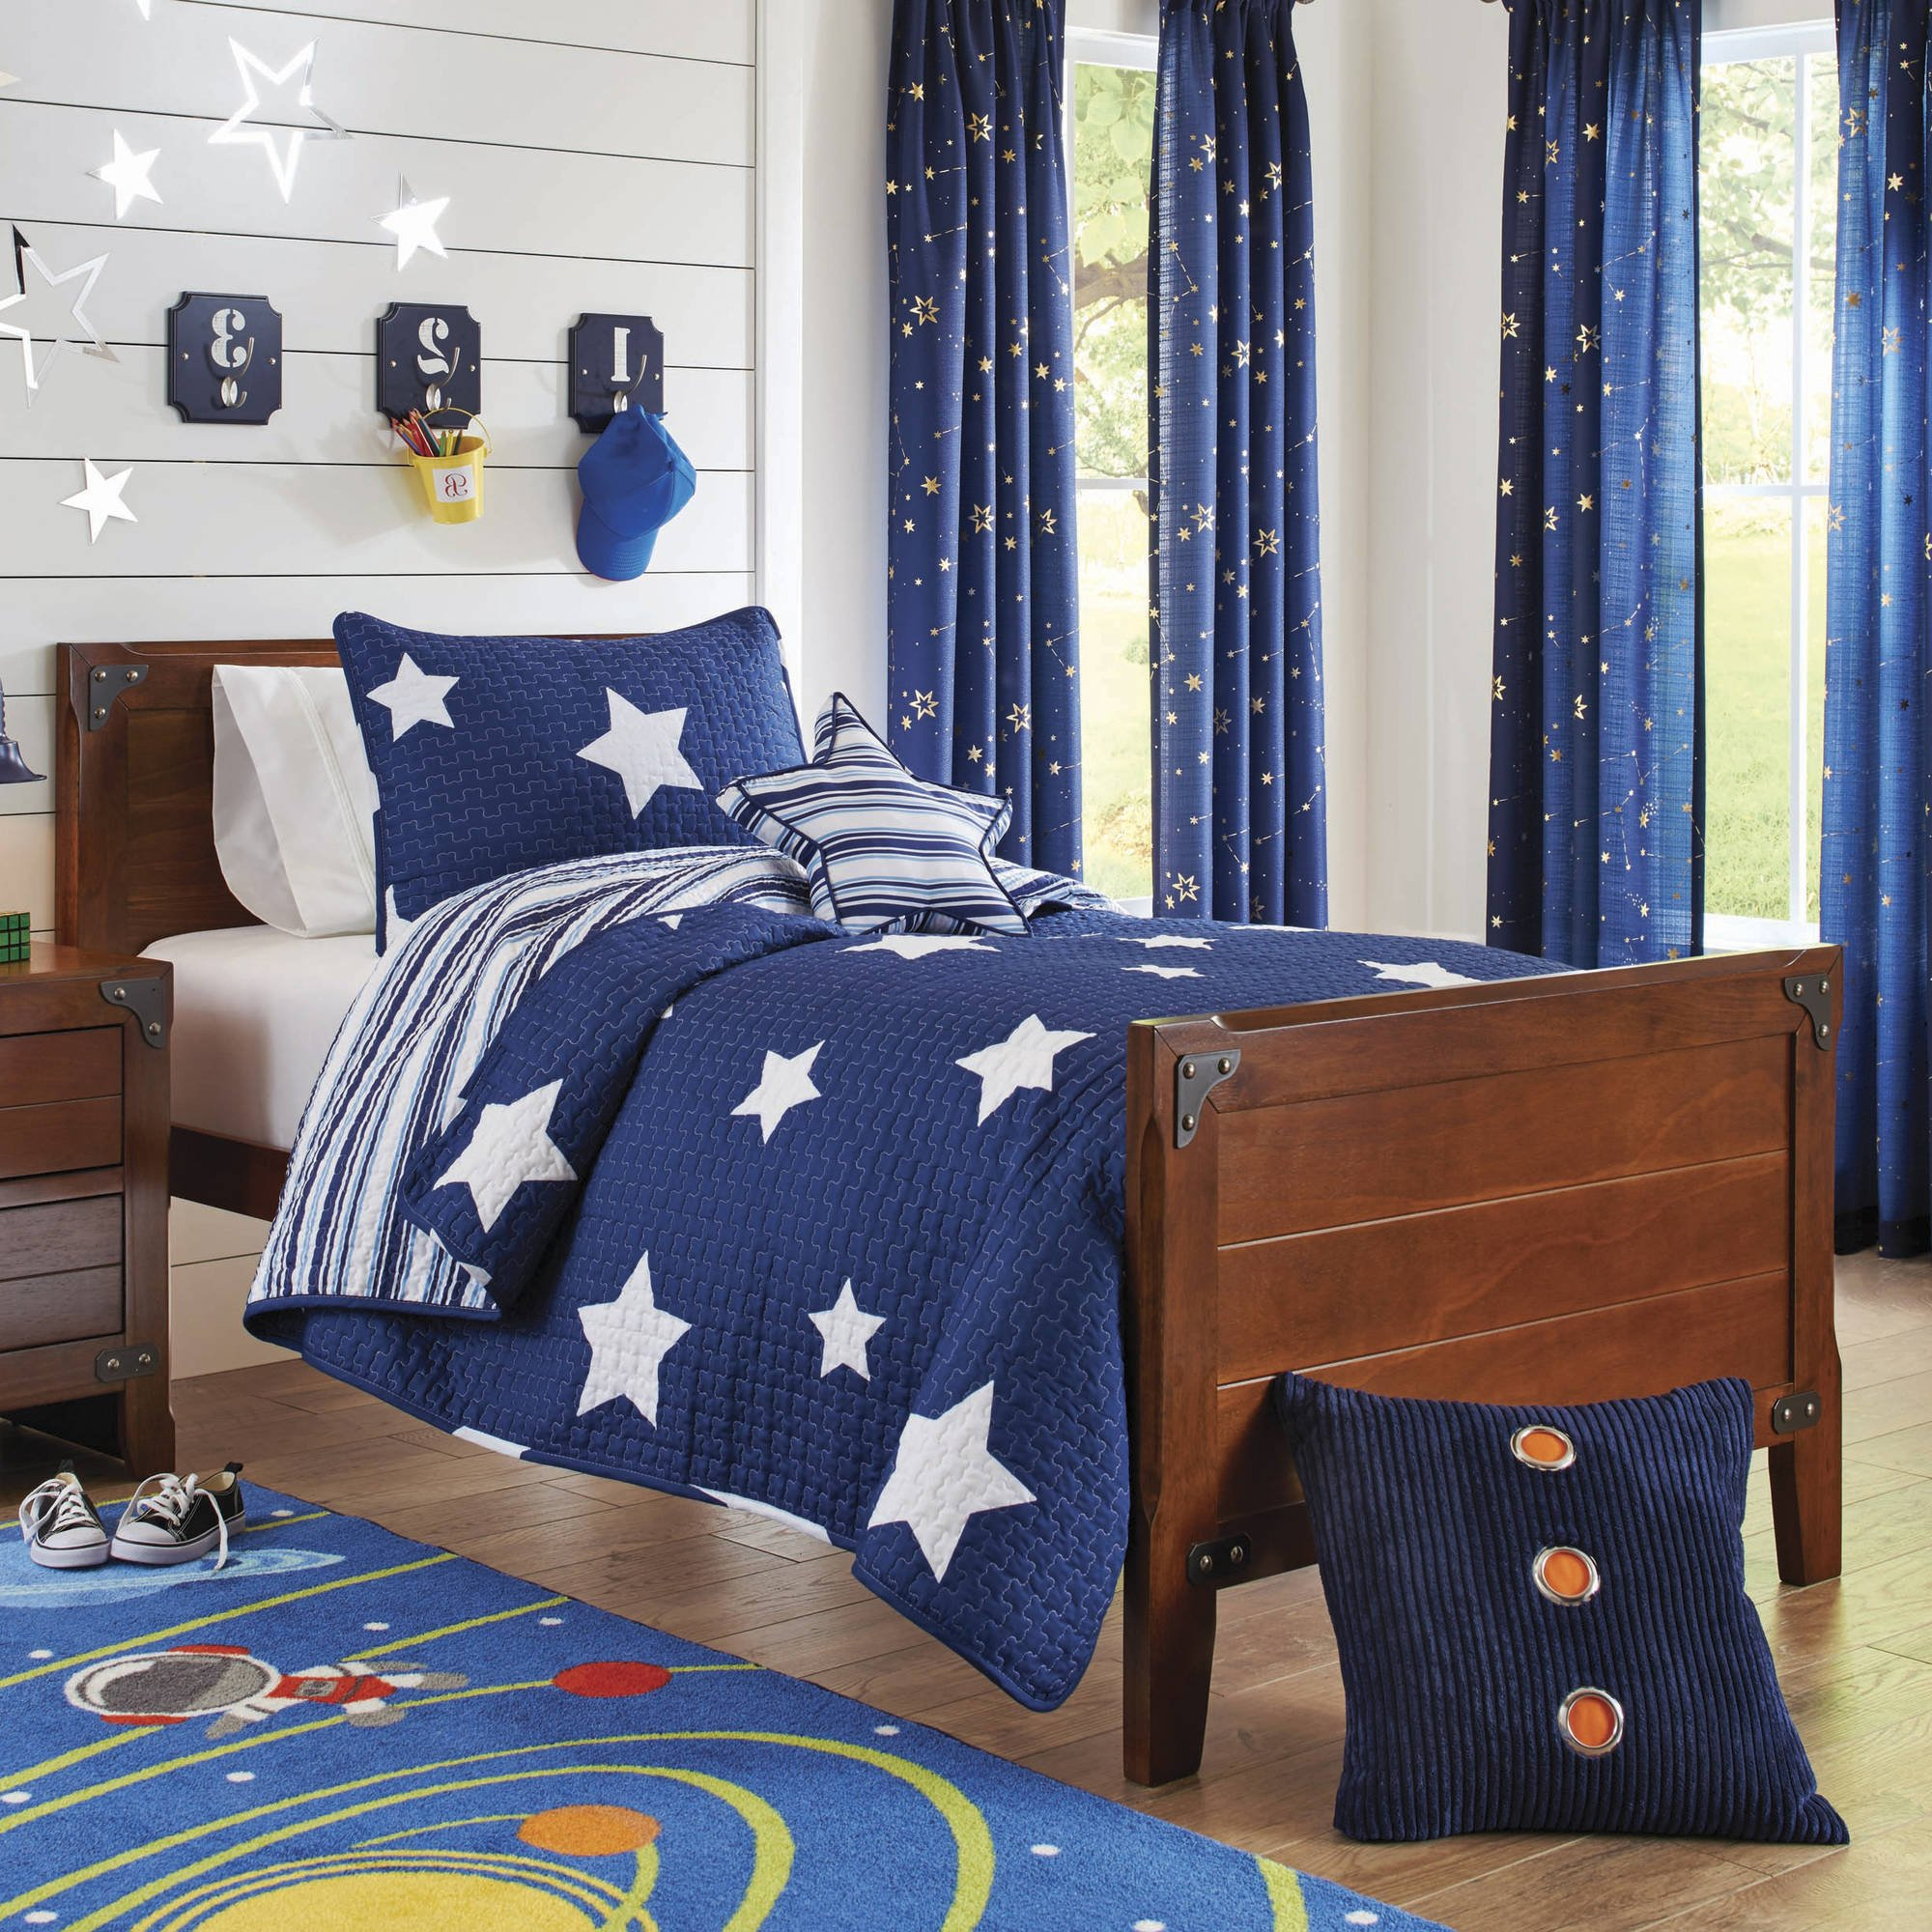 4 Piece Boys Navy Blue Planets Stars Quilt Full Queen Set, White Color Space Pattern Planets Design, Kids Bedding For Bedroom, Modern Contemporary Universe Themed Teen Striped, Polyester Microfiber